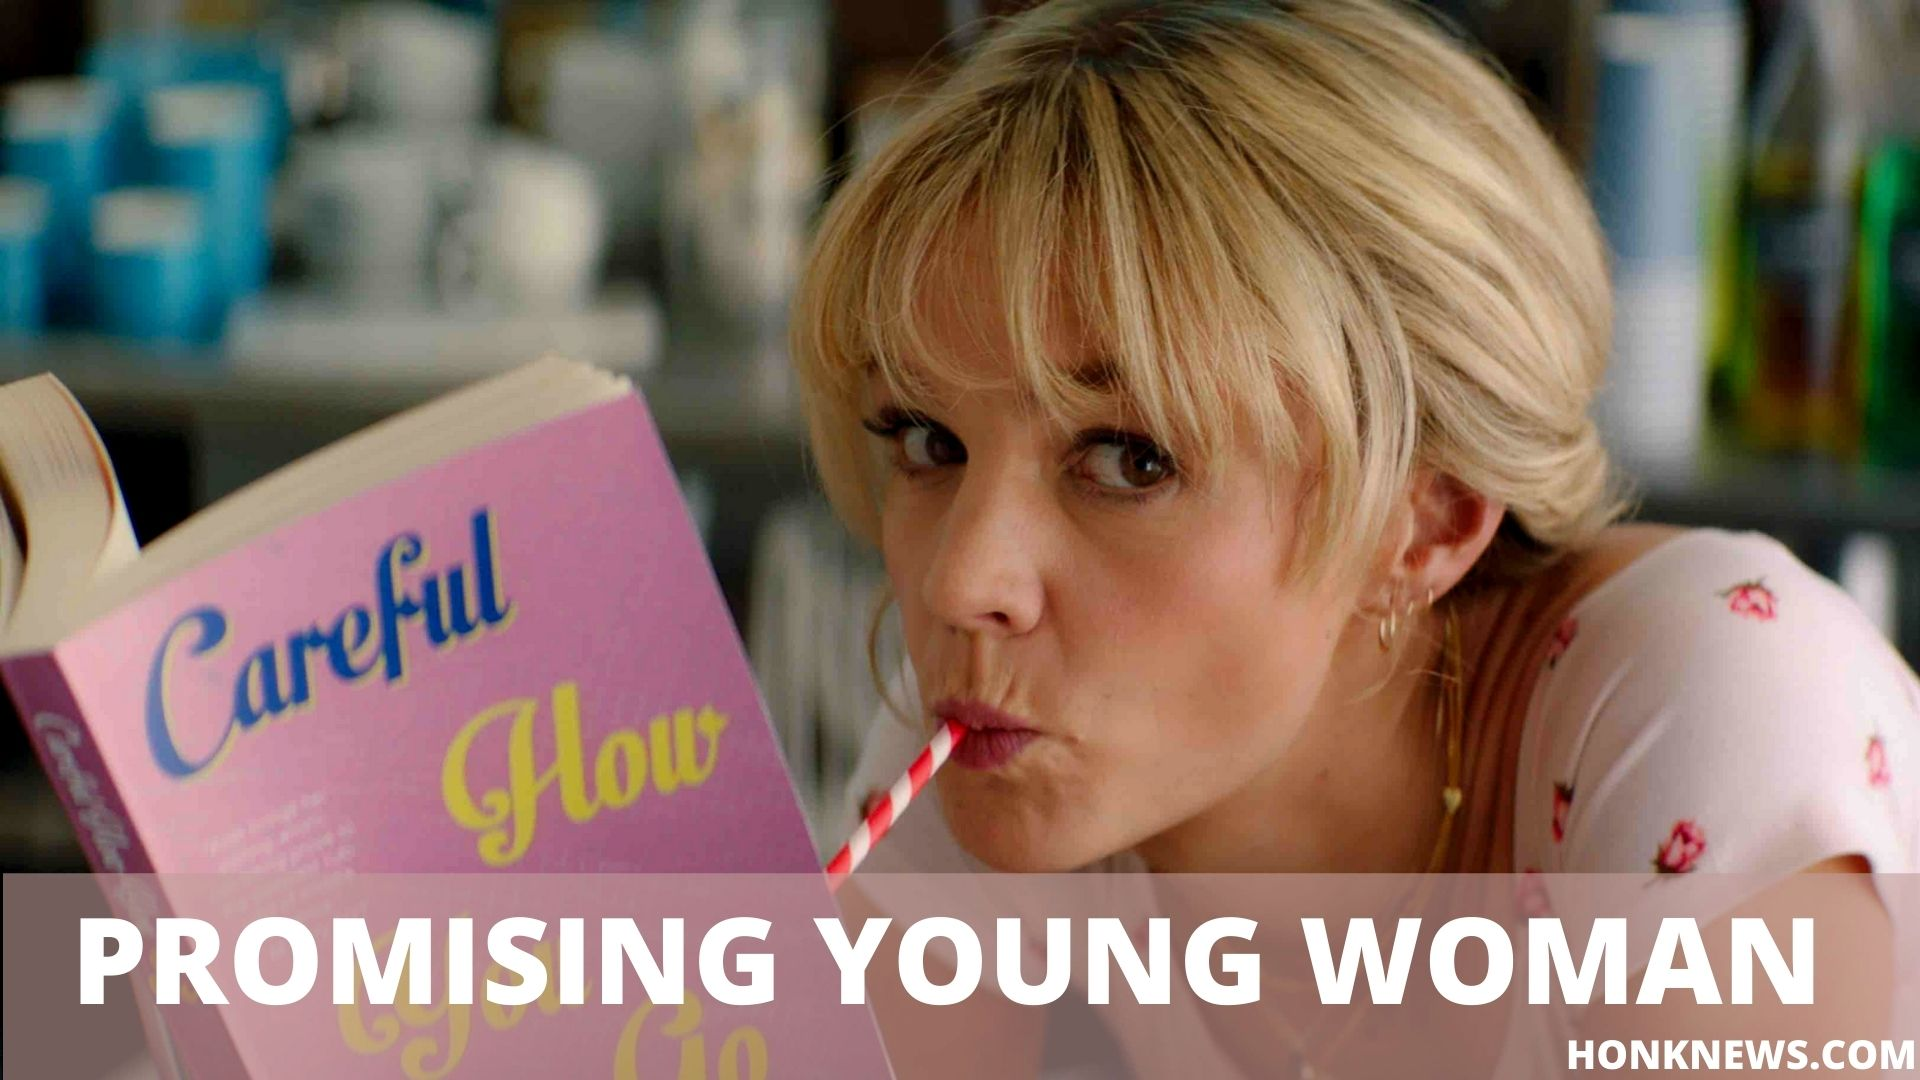 Promising Young Woman: Emerald Fennell's Academy Award Winning Directorial Debut